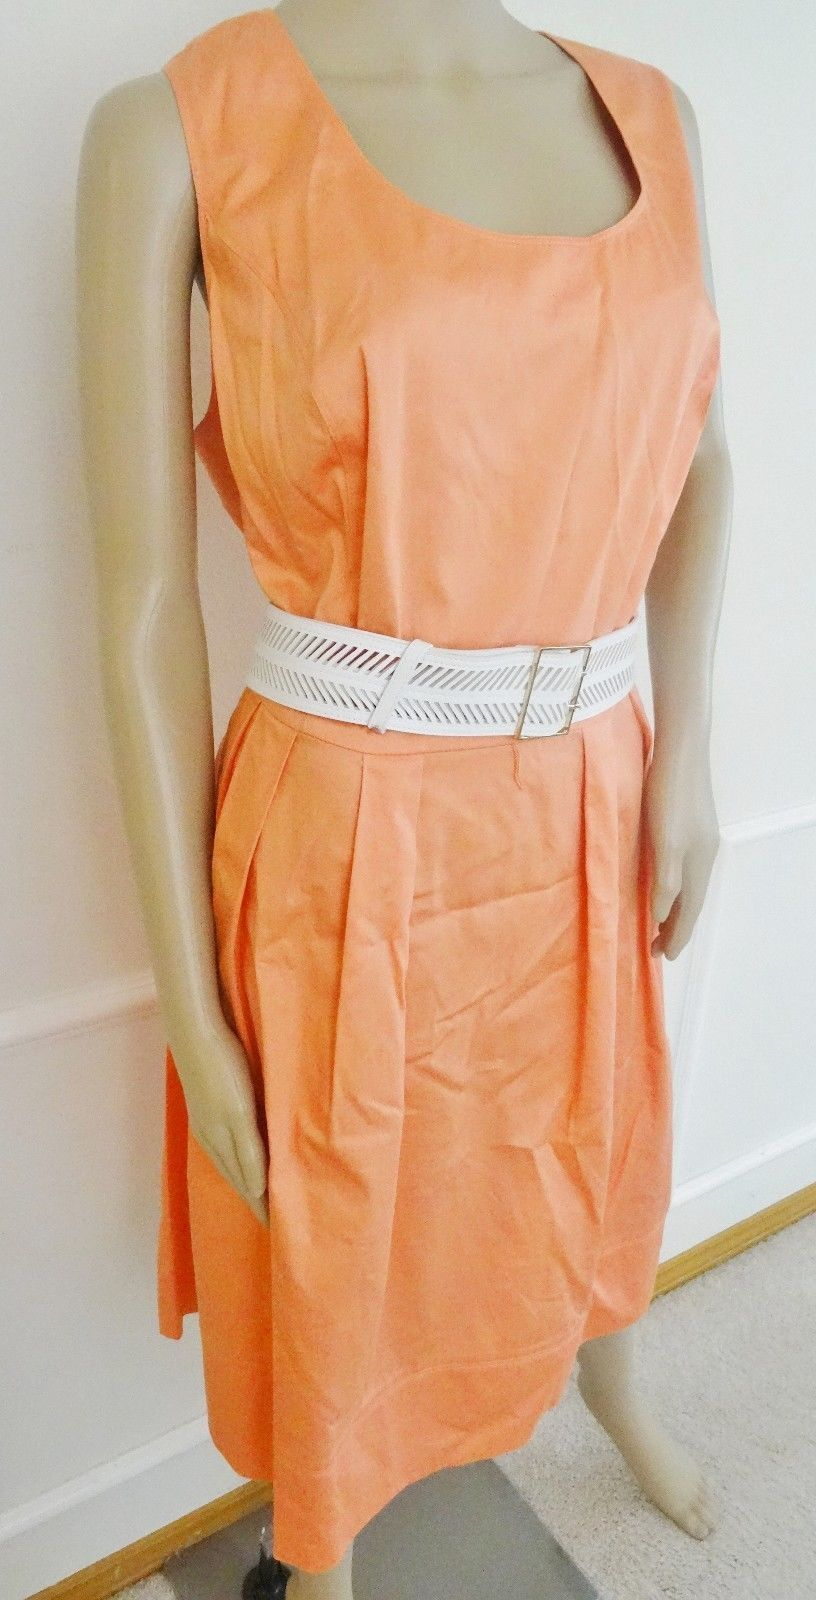 Nwt Calvin Klein Casual Day  Pleated Fit & Flare Dress Sz 18W Plus Peach $139